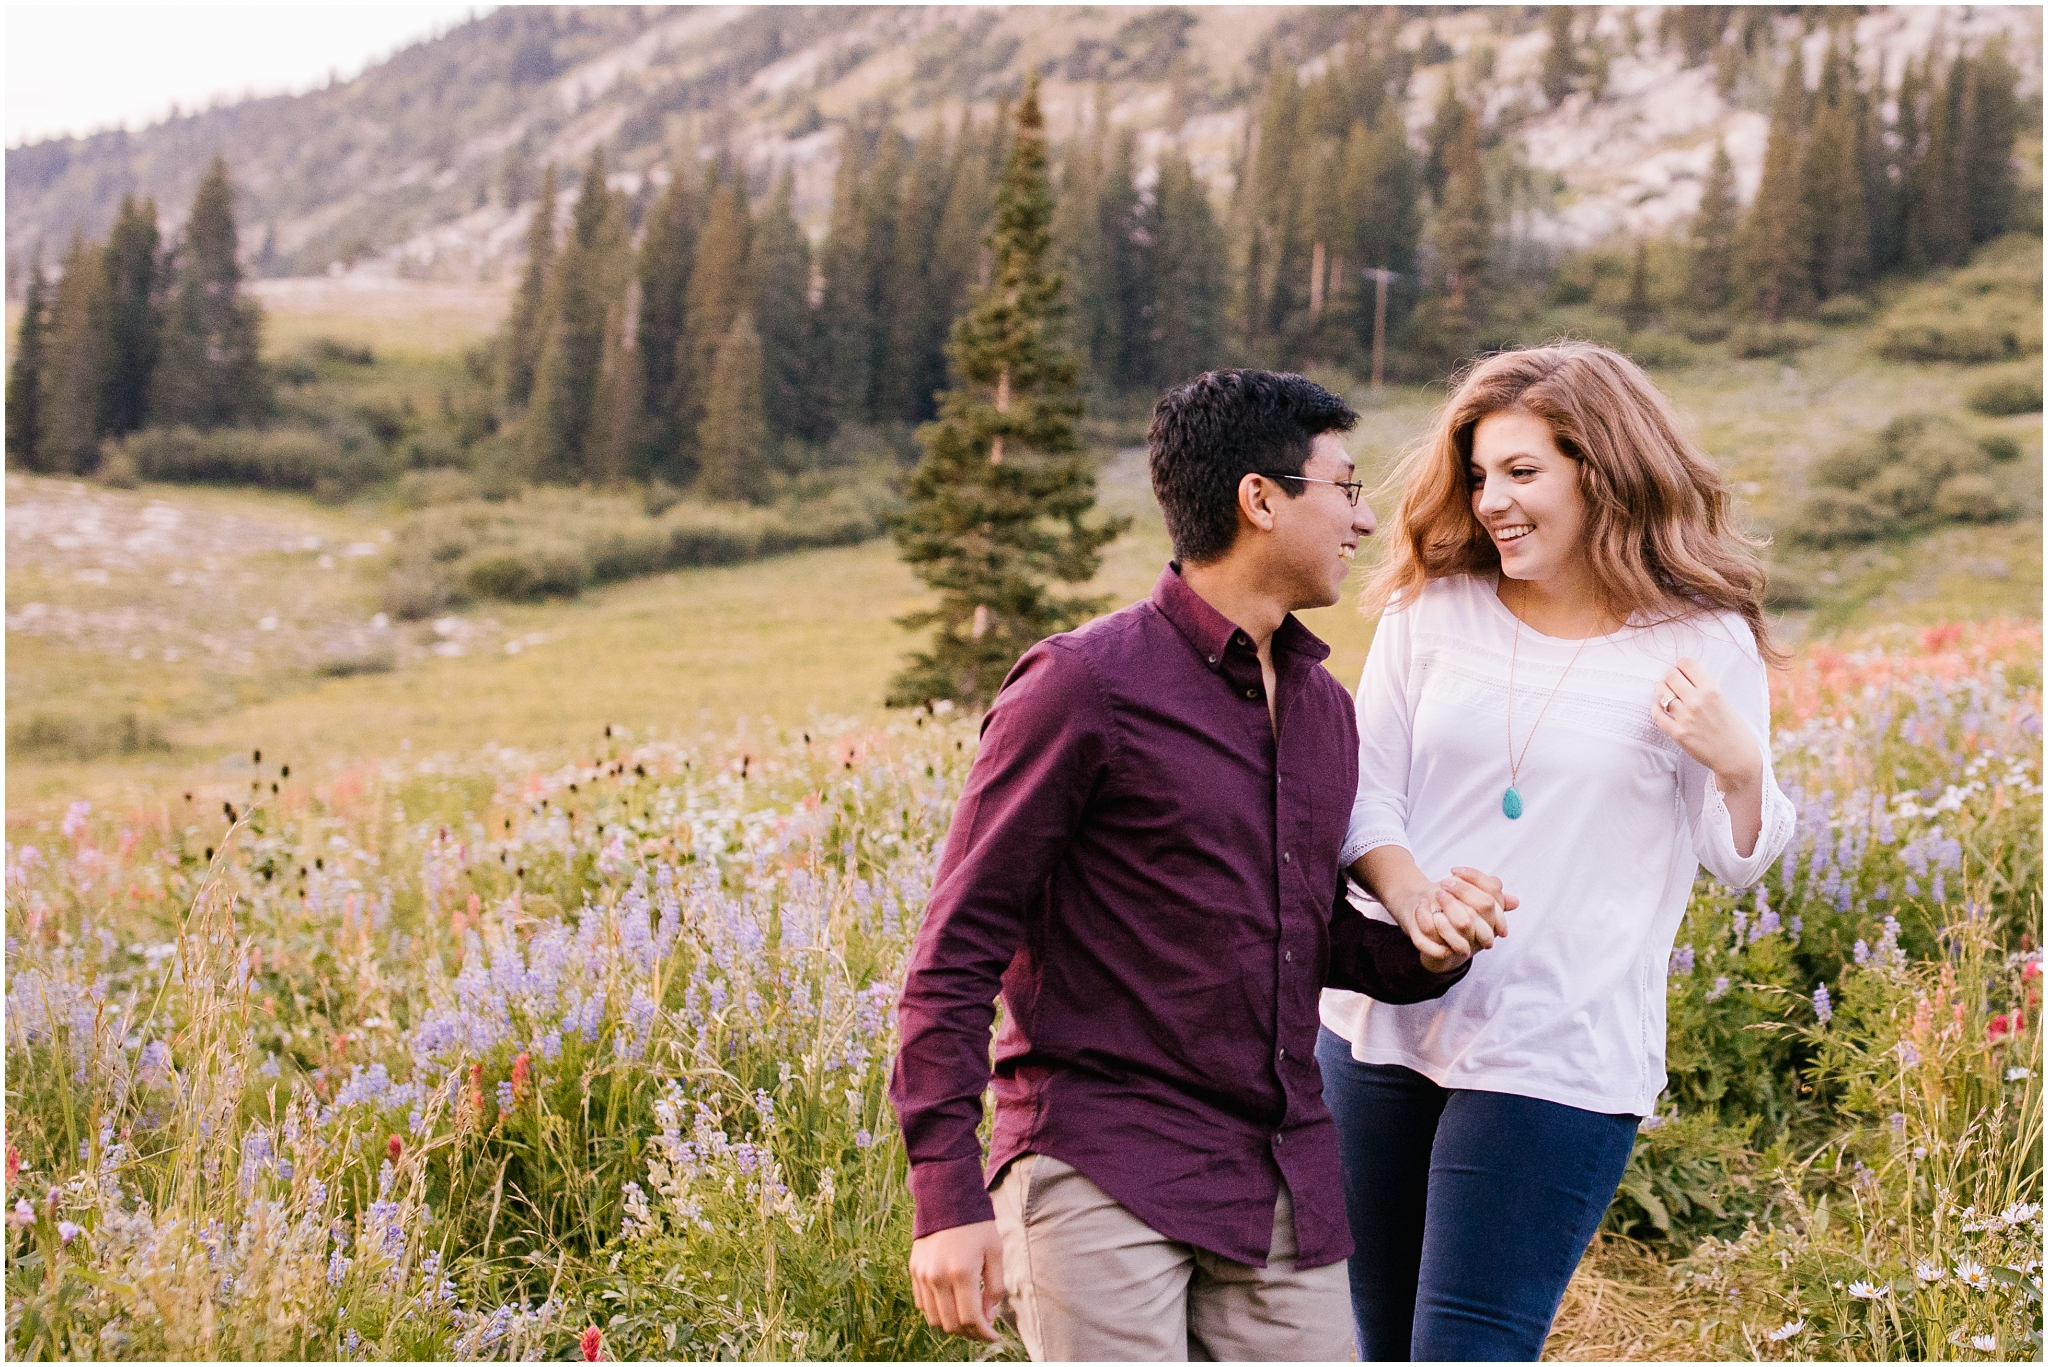 Harold and Emma-97_Lizzie-B-Imagery-Utah-Wedding-Photographer-Central-Utah-Park-City-Salt-Lake-City-Albion-Basin-Engagement-Session.jpg